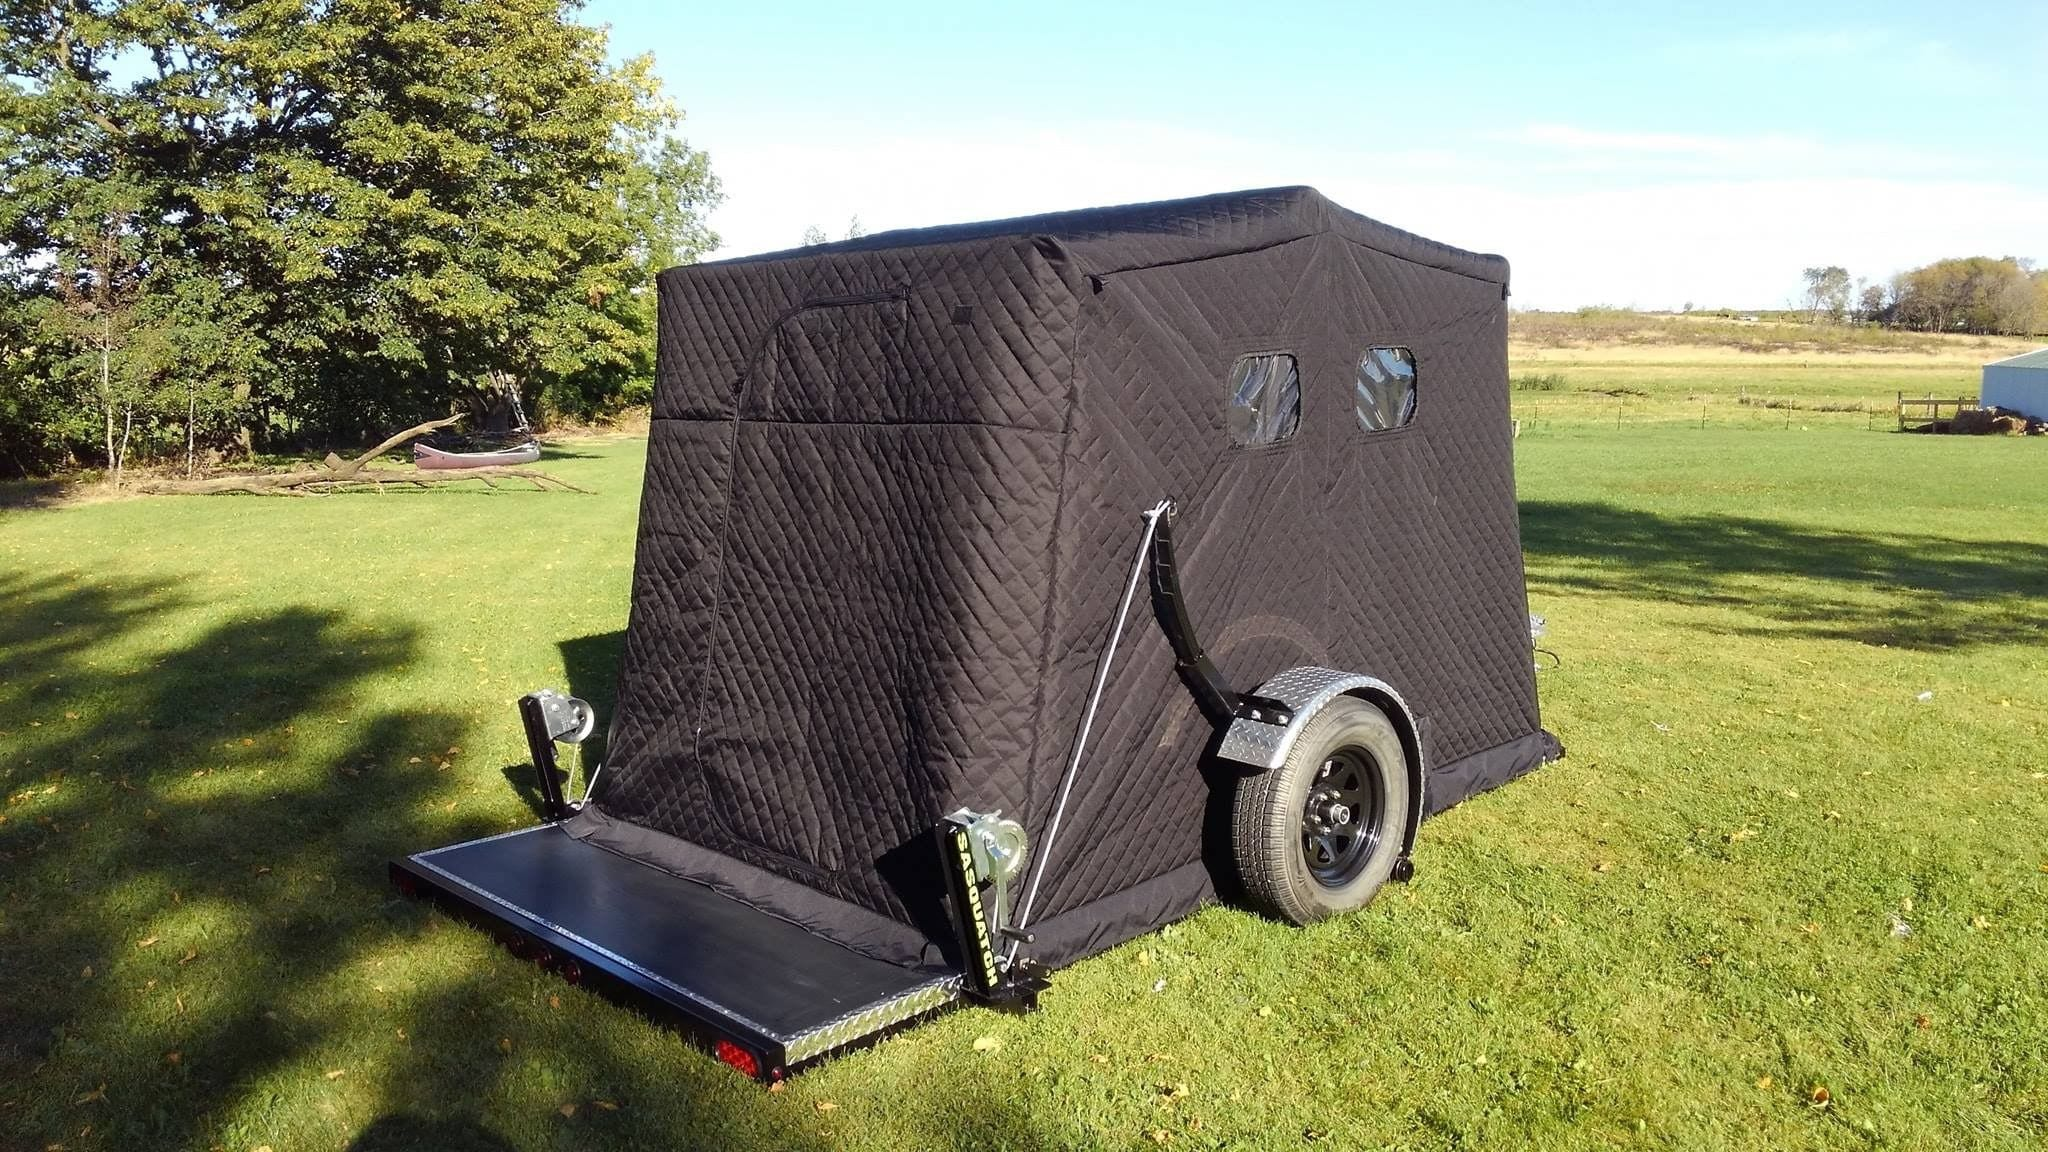 Ice Forts | Premier Yetti Fish House Dealer | Ice Fish ... on movable ice house designs, portable fish house designs, ice house axle plans, ice fishing house designs, ice house ideas, ice shack designs,